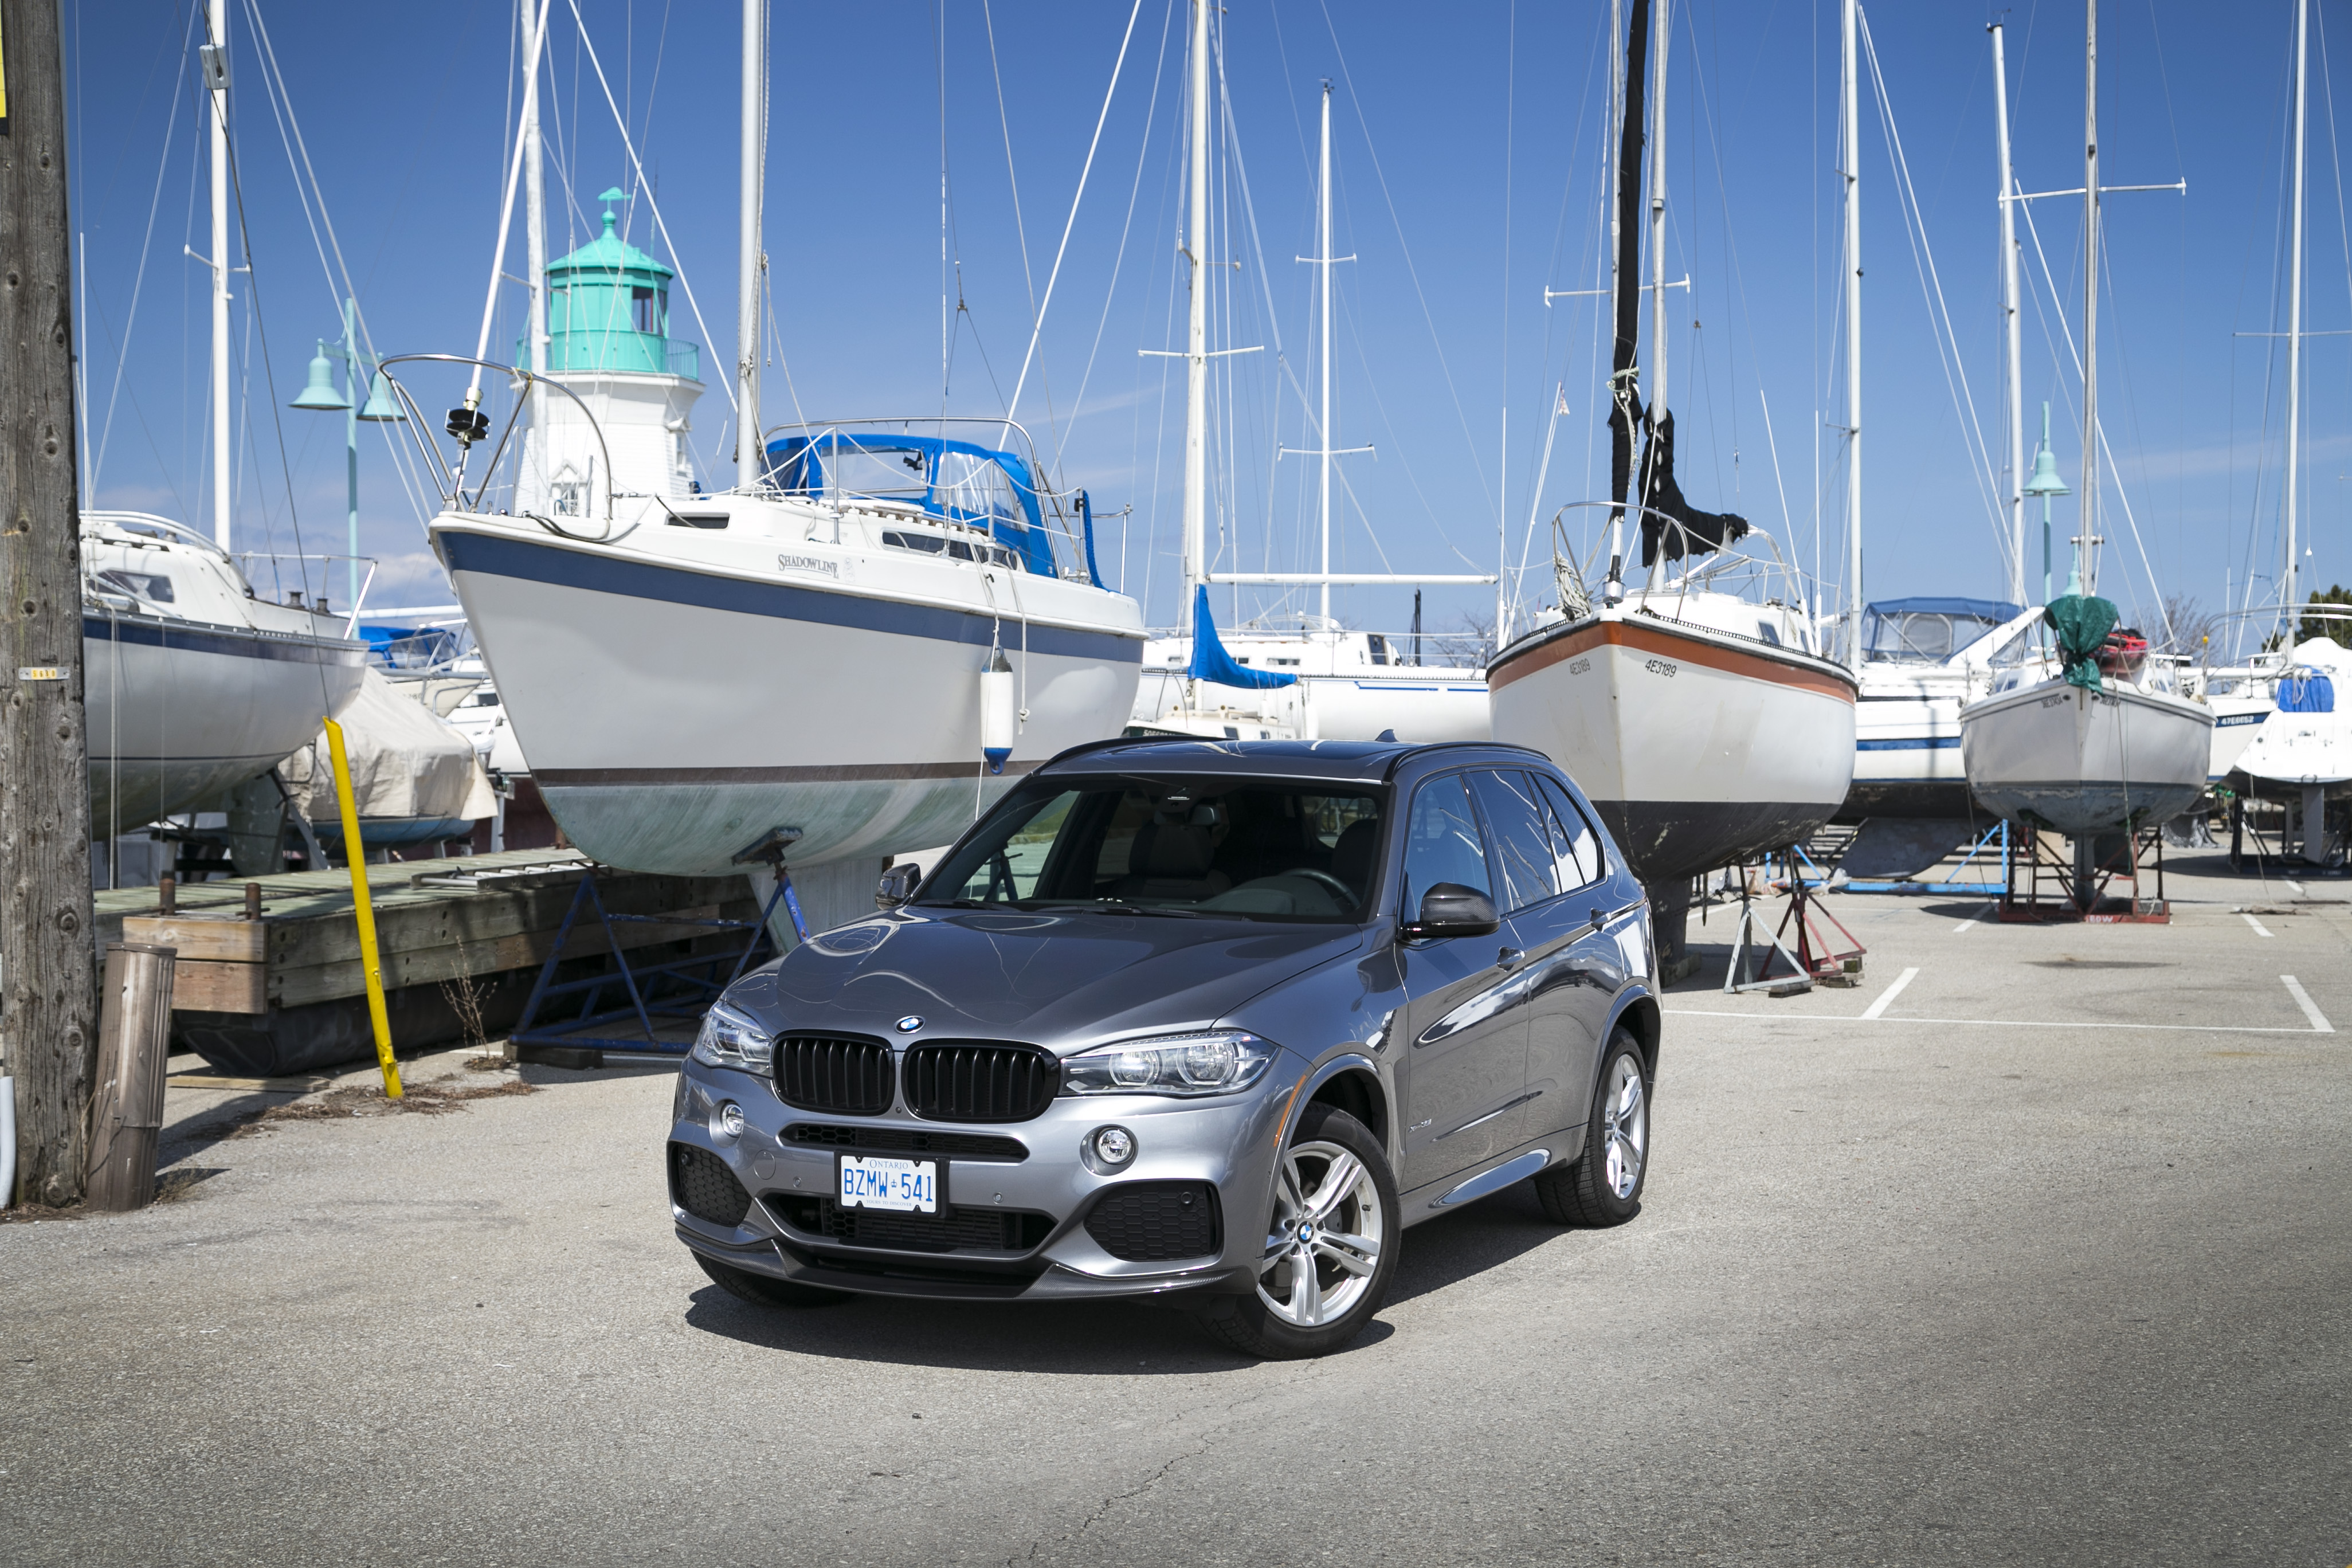 New bmw car finally he chooses bmw over his favorite scorpio car - 2017 Bmw X5 Xdrive35i Review Luxury Mid Size Crisis The Truth About Cars